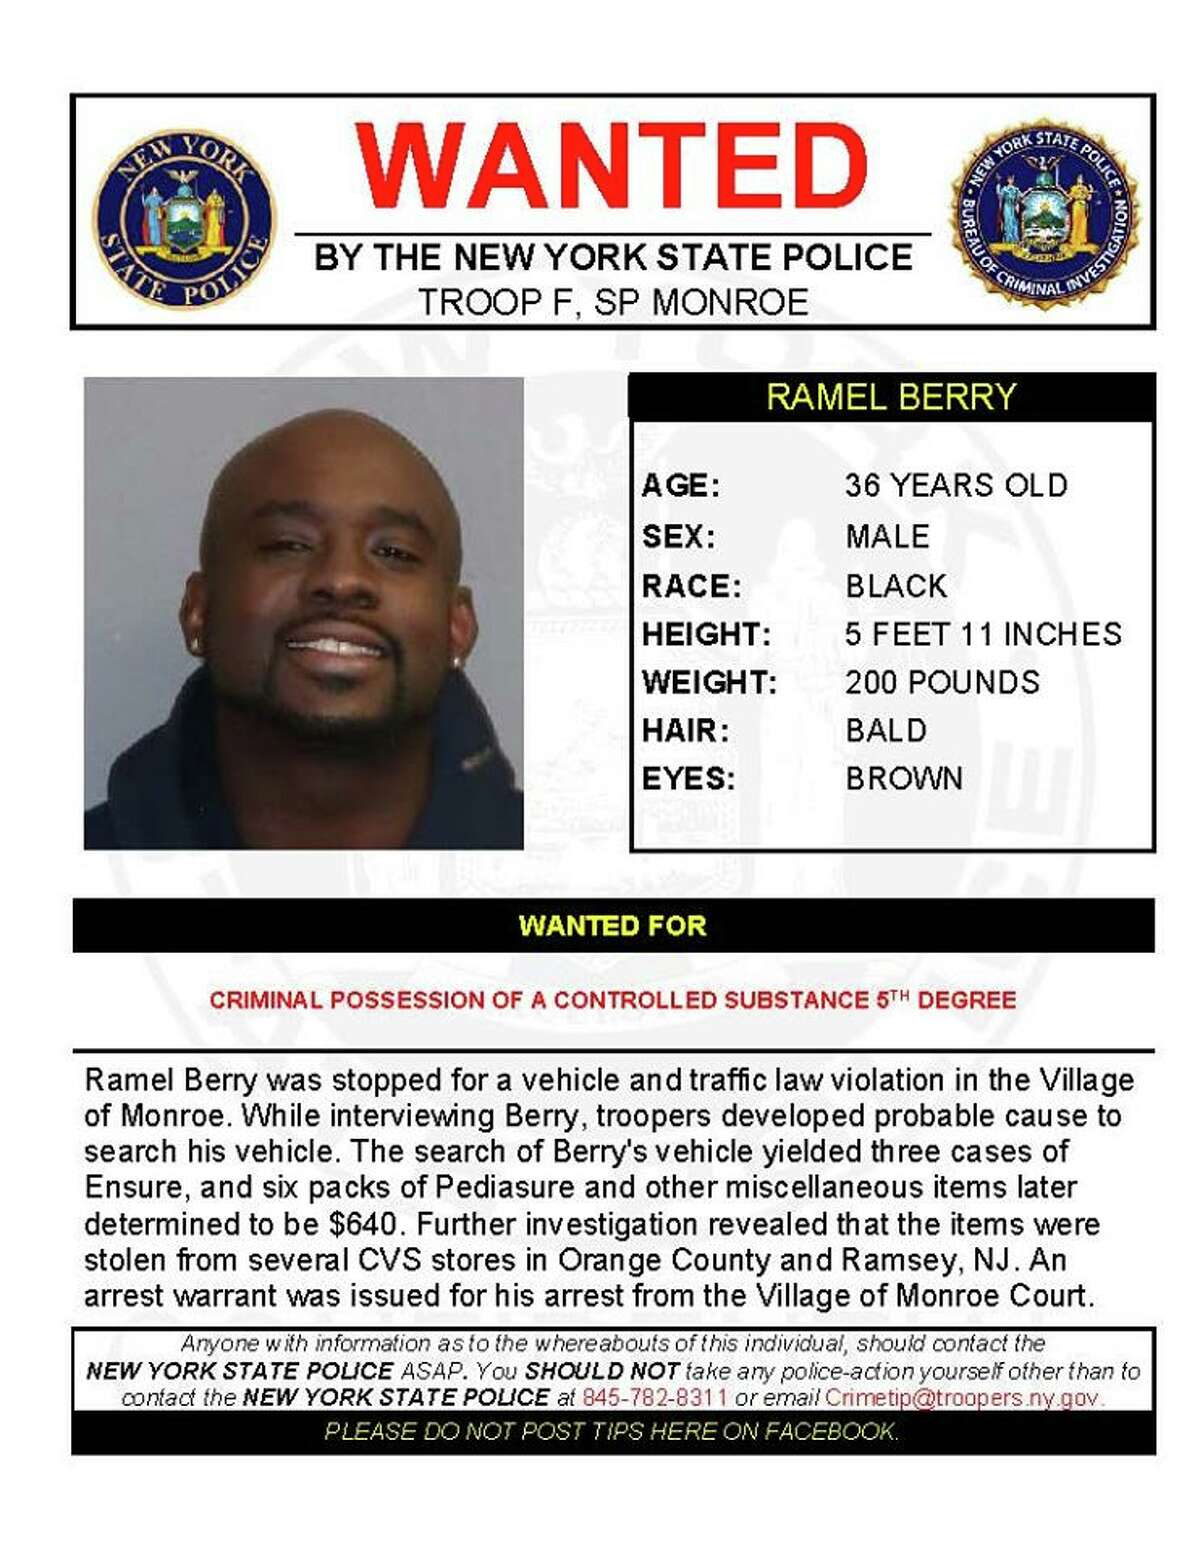 Ramel Berry, 36, was stopped for a vehicle and traffic law violation in the Village of Monroe when troopers developed probable cause to search his vehicle. The search turned up three cases of Ensure, six packs of Pediasure and other miscellaneous items later determined to be worth $640, troopers said. An investigation revealed the items were stolen from several CVS stores in Orange County and Ramsey, N.J. An arrest warrant for criminal possession of a controlled substance was issued from the Village of Monroe Court.